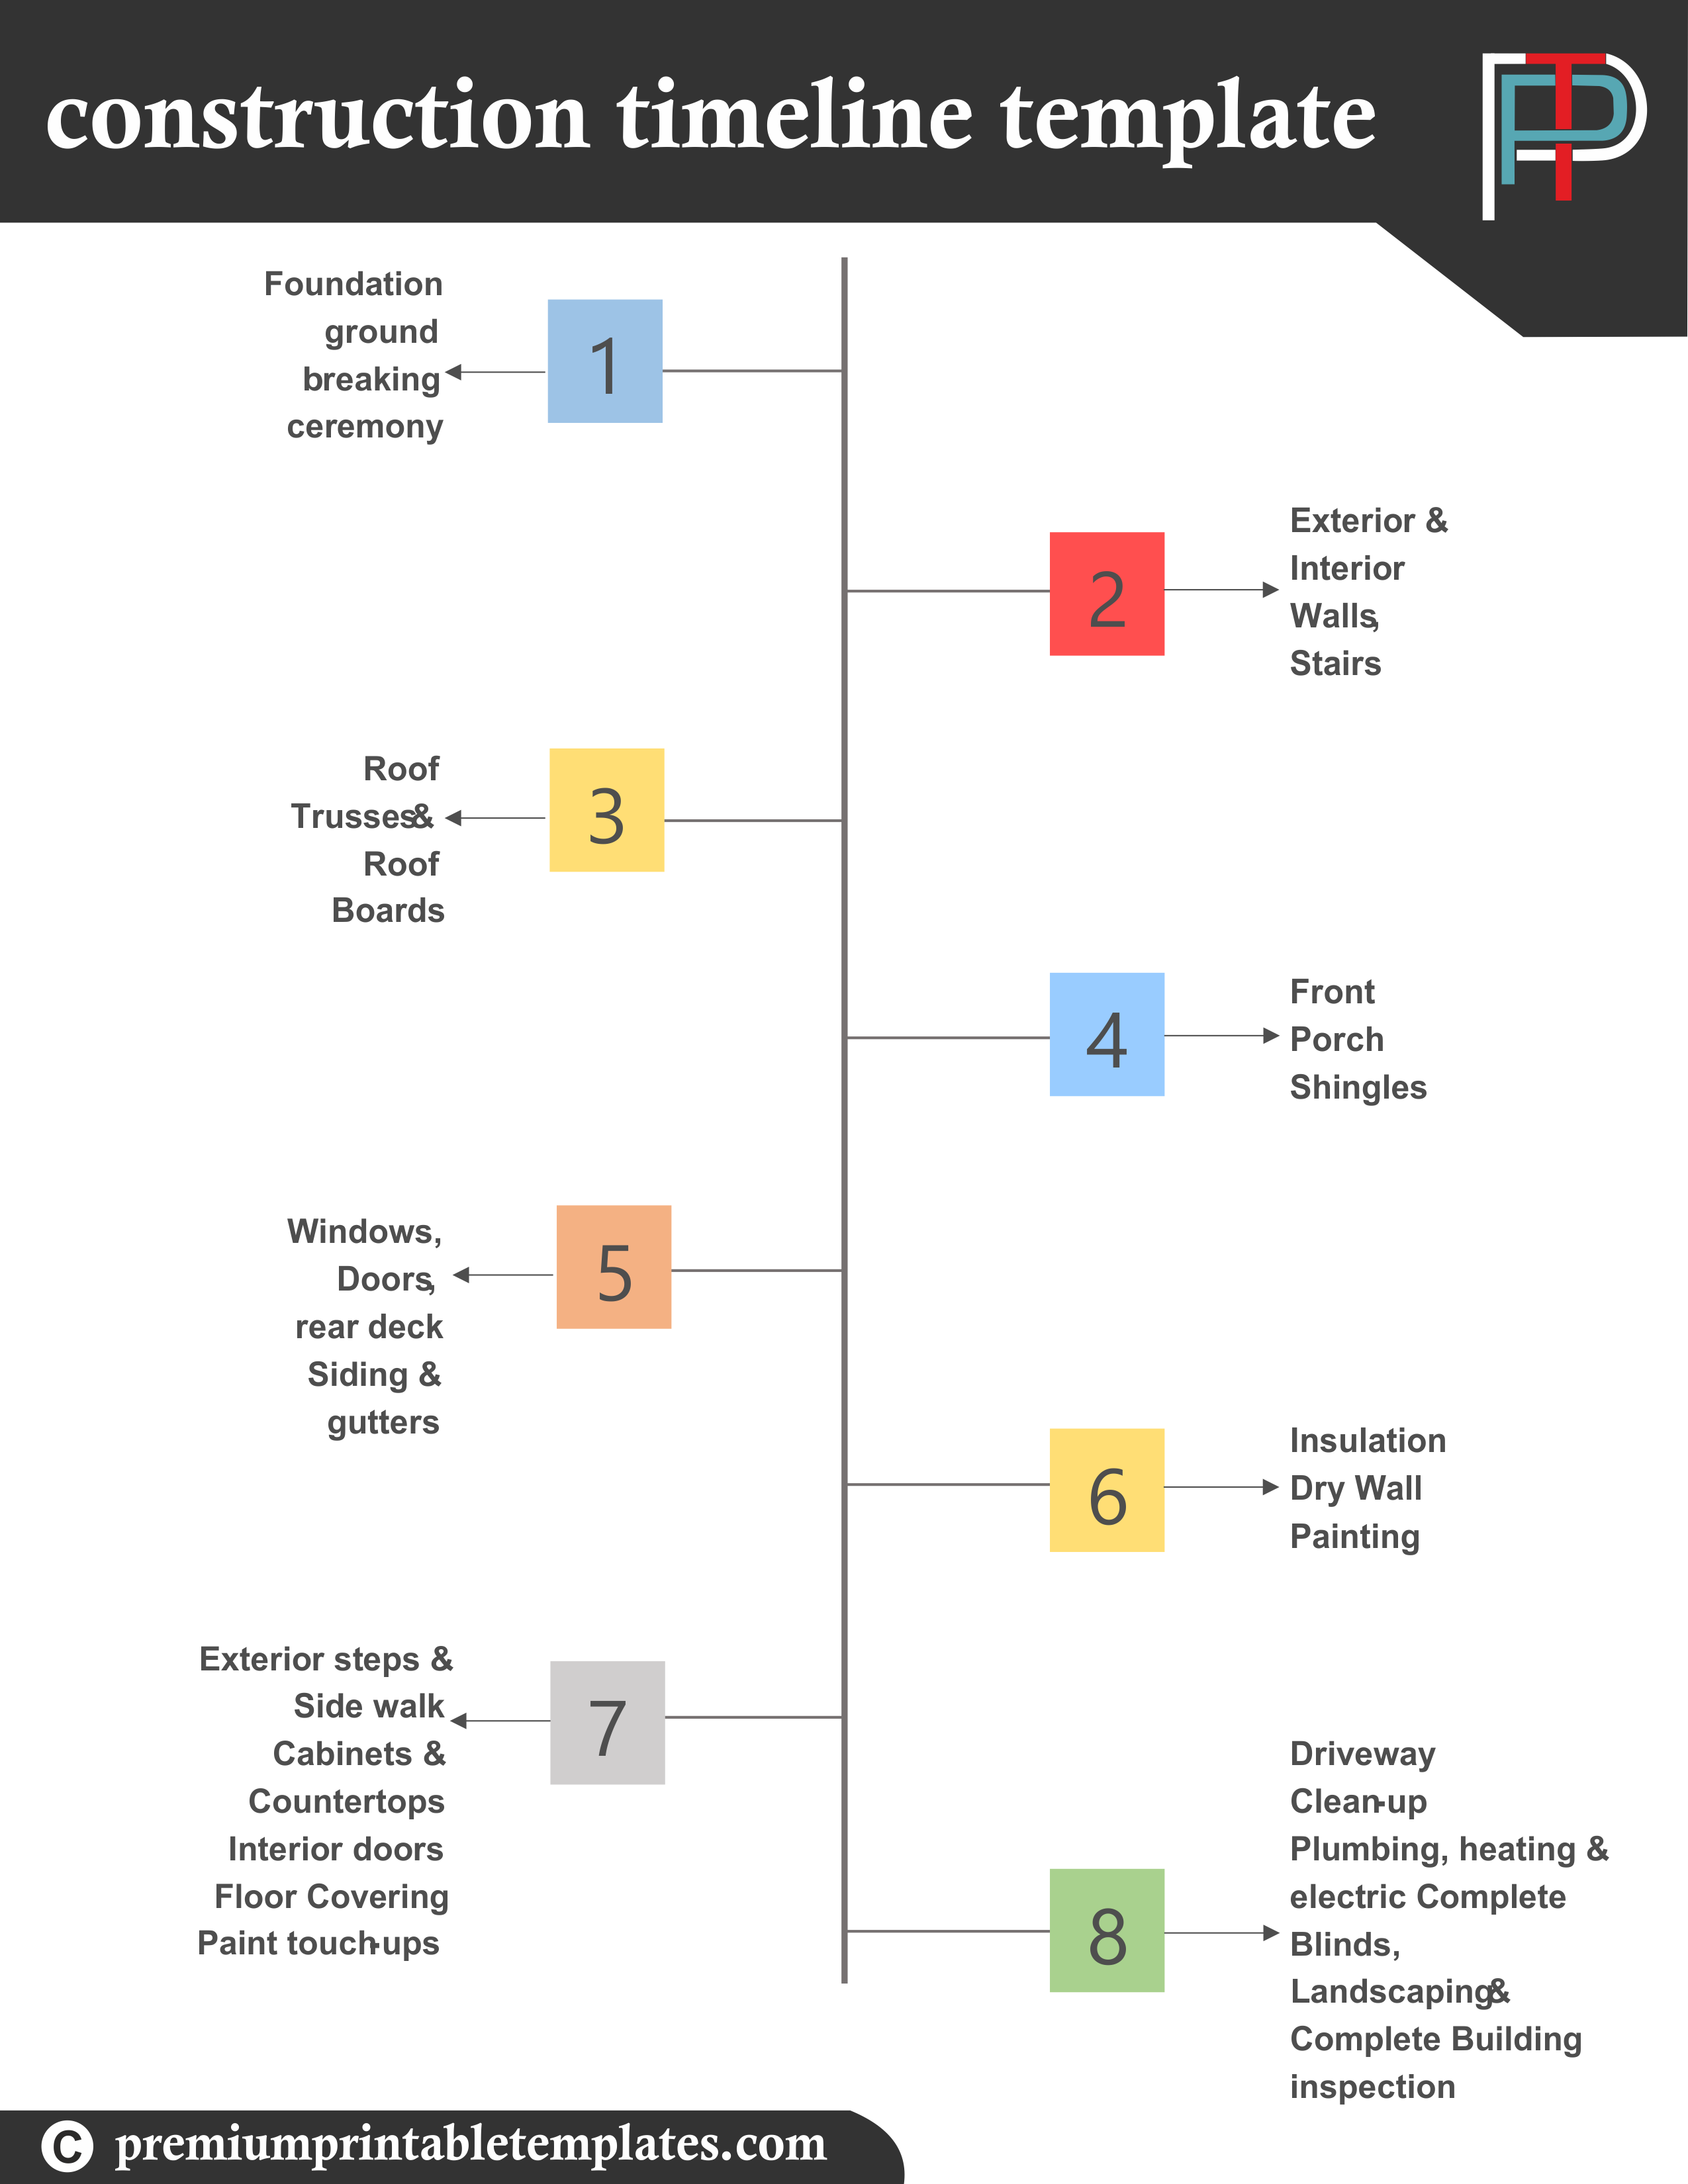 the timeline templates is the format of timeline templates for the